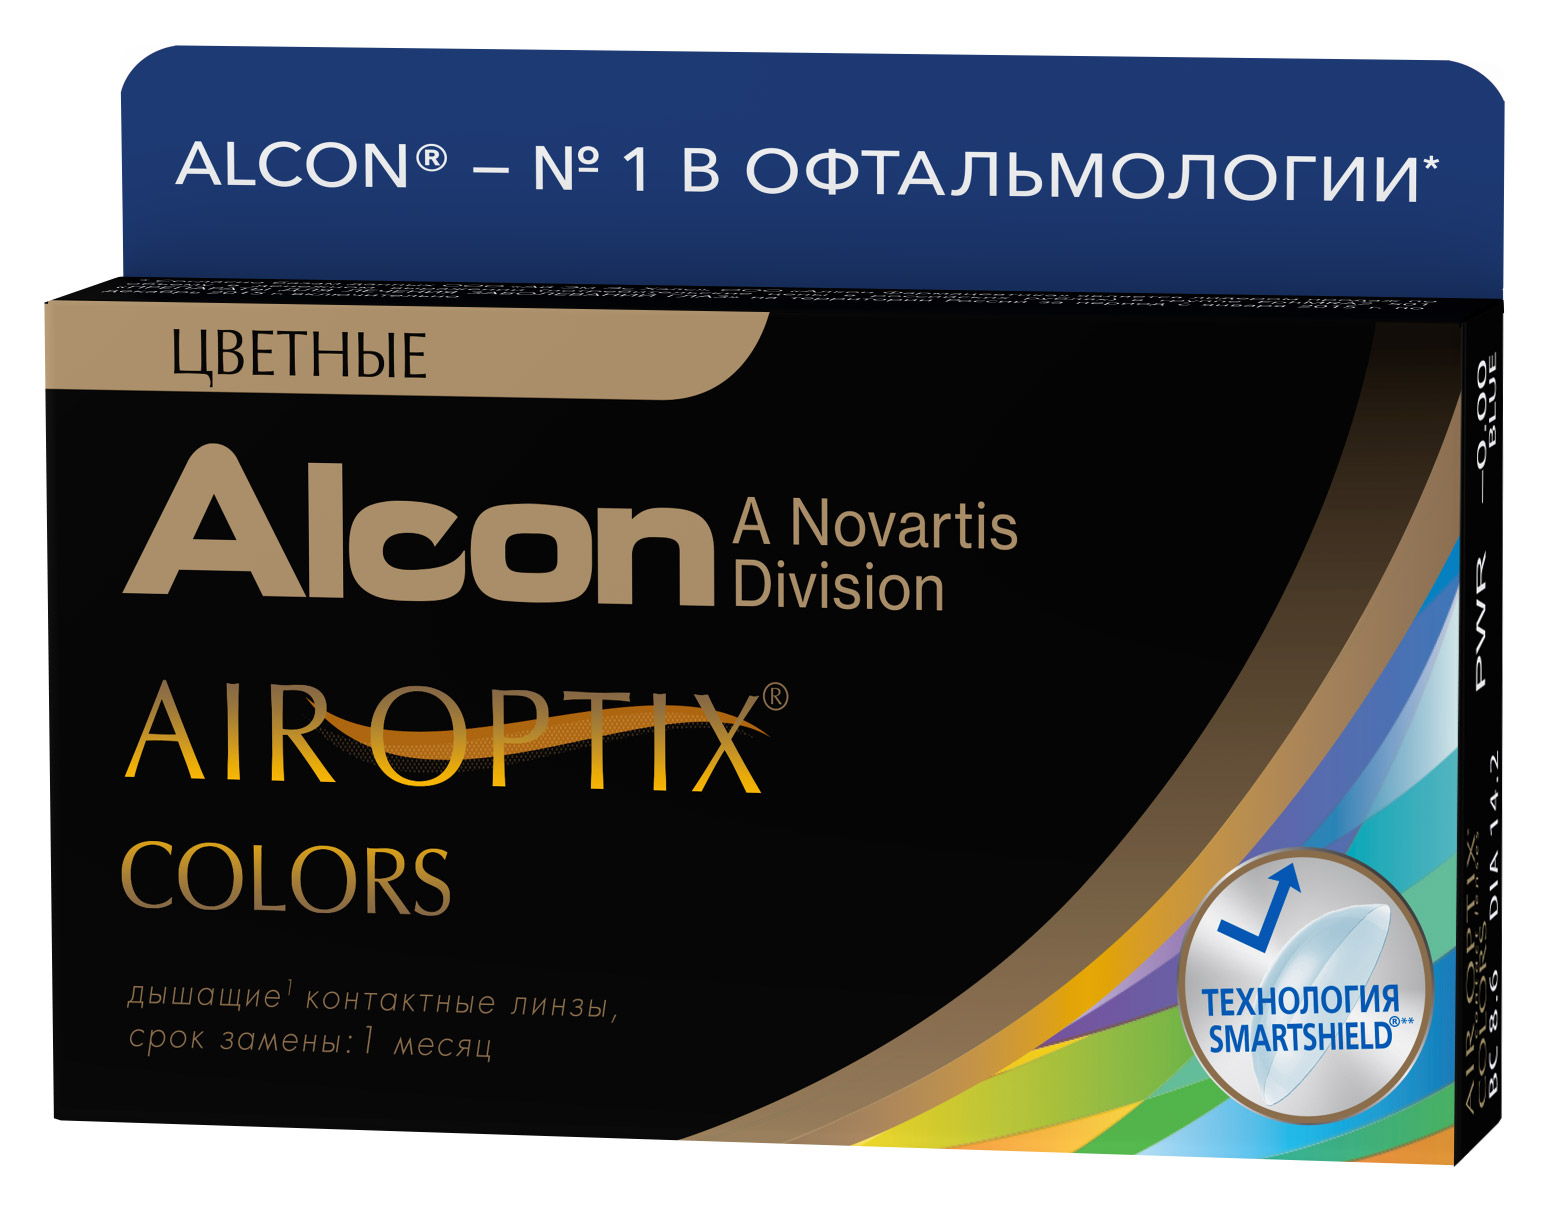 Air Optix Colors, 2 шт.